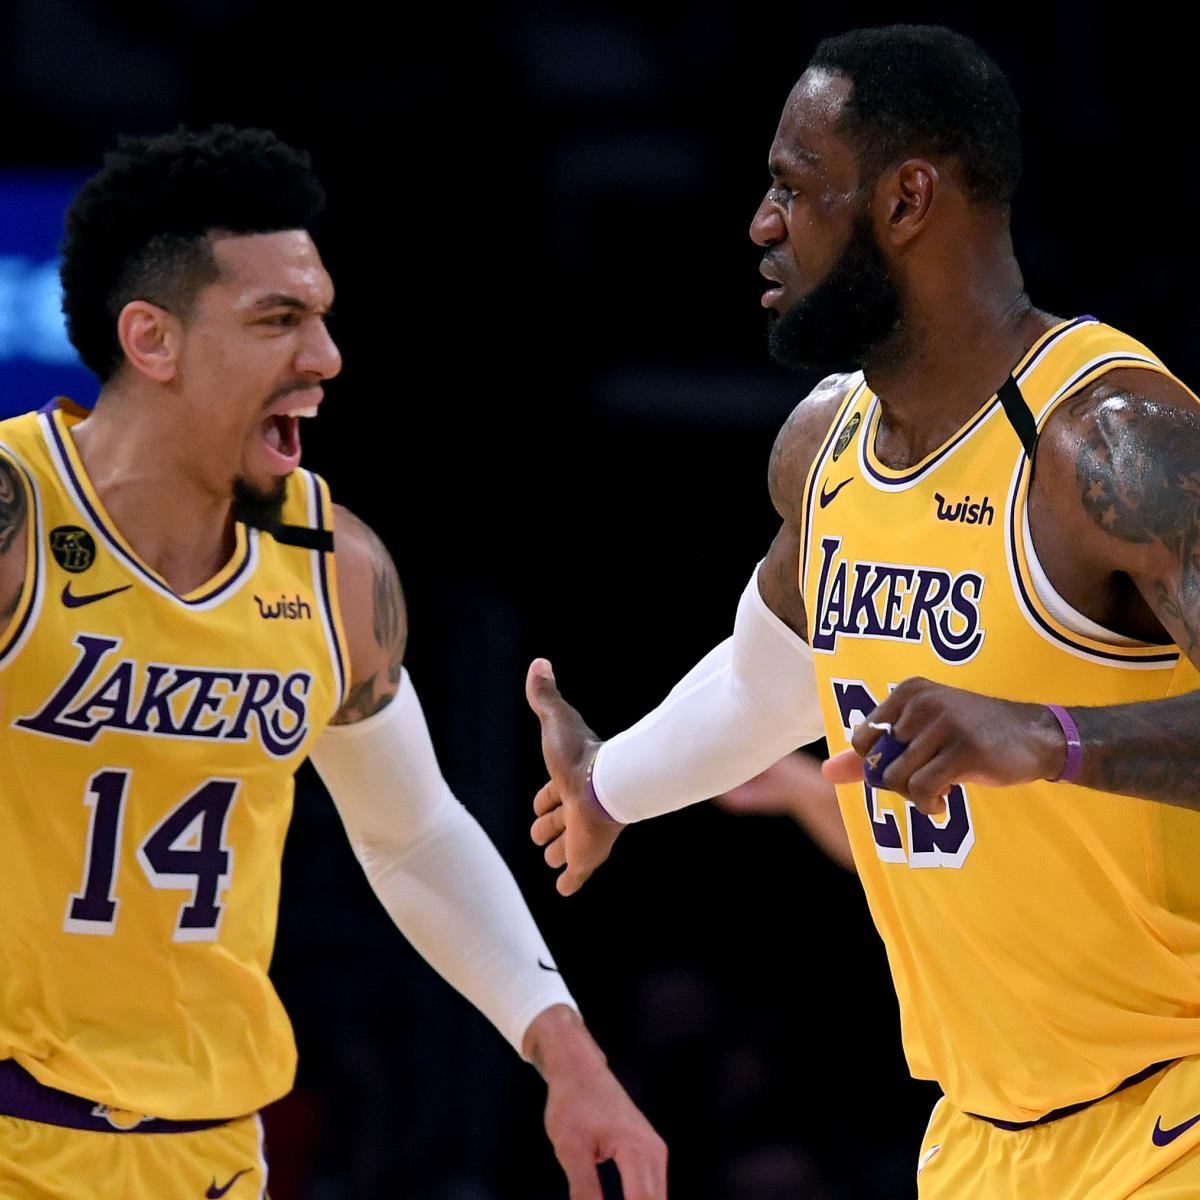 Danny Green: LeBron James Has Been 'Great' Leader for Lakers During NBA Hiatus http://dlvr.it/Rb8p20pic.twitter.com/jIB7TkVsaO